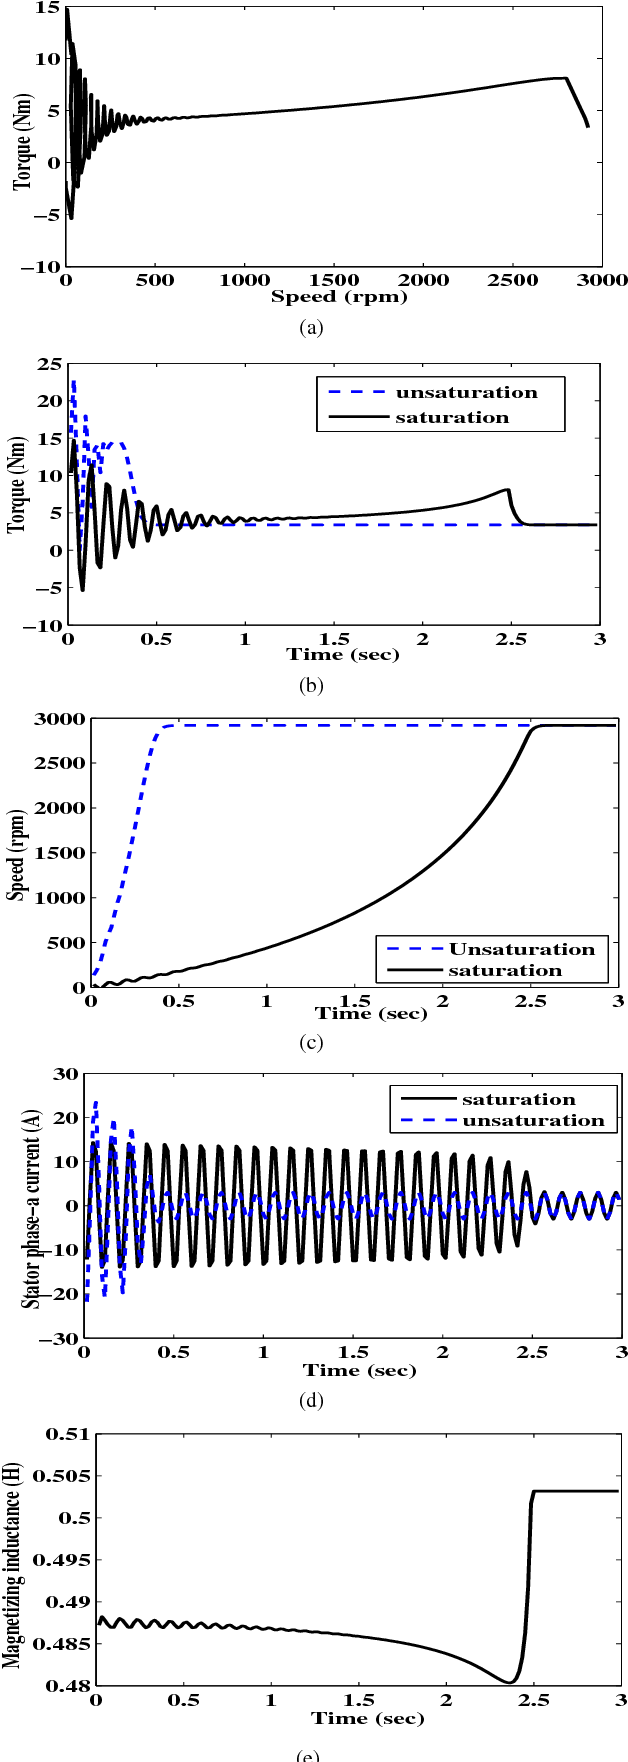 Fig. 4. Observation with and without saturation at on-load (a) Torque speed characteristics (b) Electromagnetic torque (c) Speed of the motor (d) Stator phase-a current (e) Variation of magnetizing inductance.